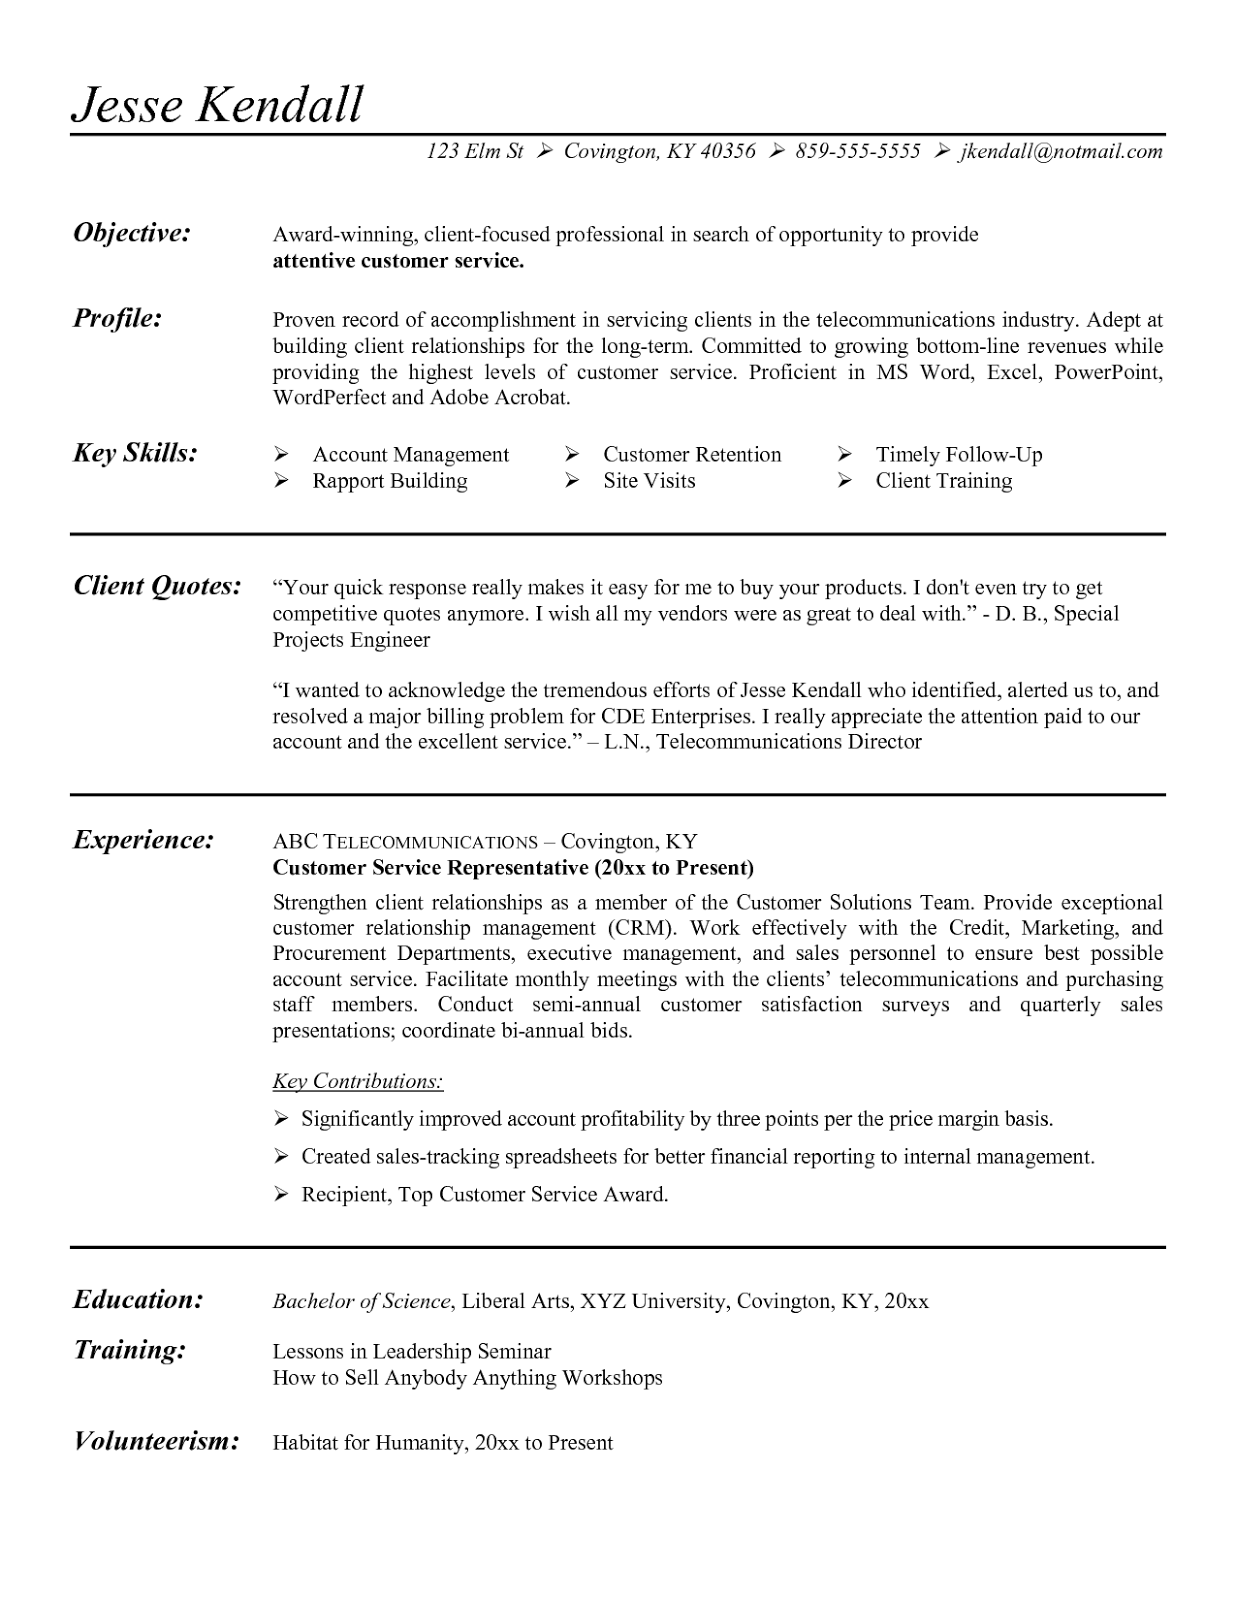 resume resume sample for customer service agent customer service representative resume cover letter resumes examples marvelous - Cover Letter For Bank Customer Service Representative